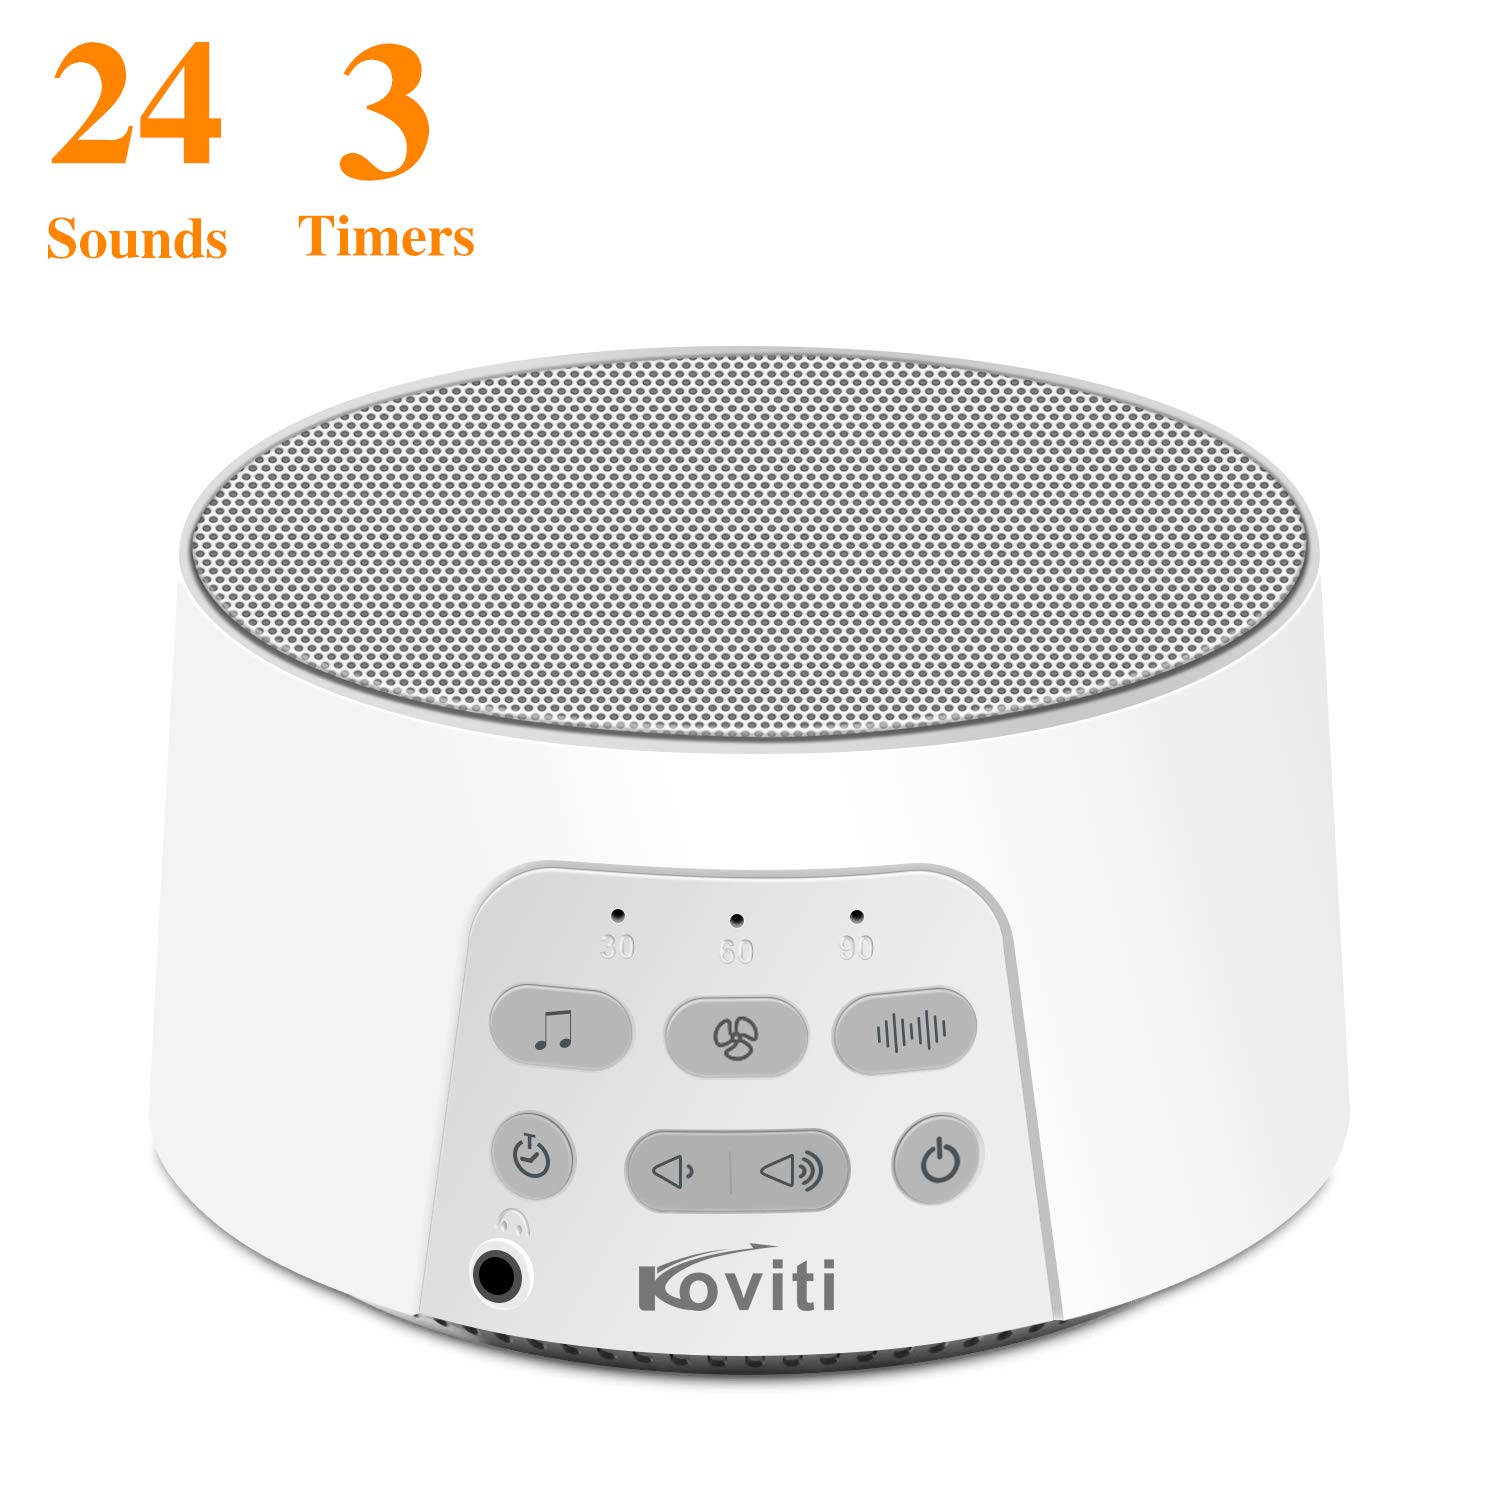 White Noise Machine with 24 High Fidelity&Soothing Sounds,Koviti Sound Machine with Timer&Memory Feature for Sleeping&Relaxation,Noise Machine with USB Cable for Kids,Adults,Home,Office or Travel by Koviti